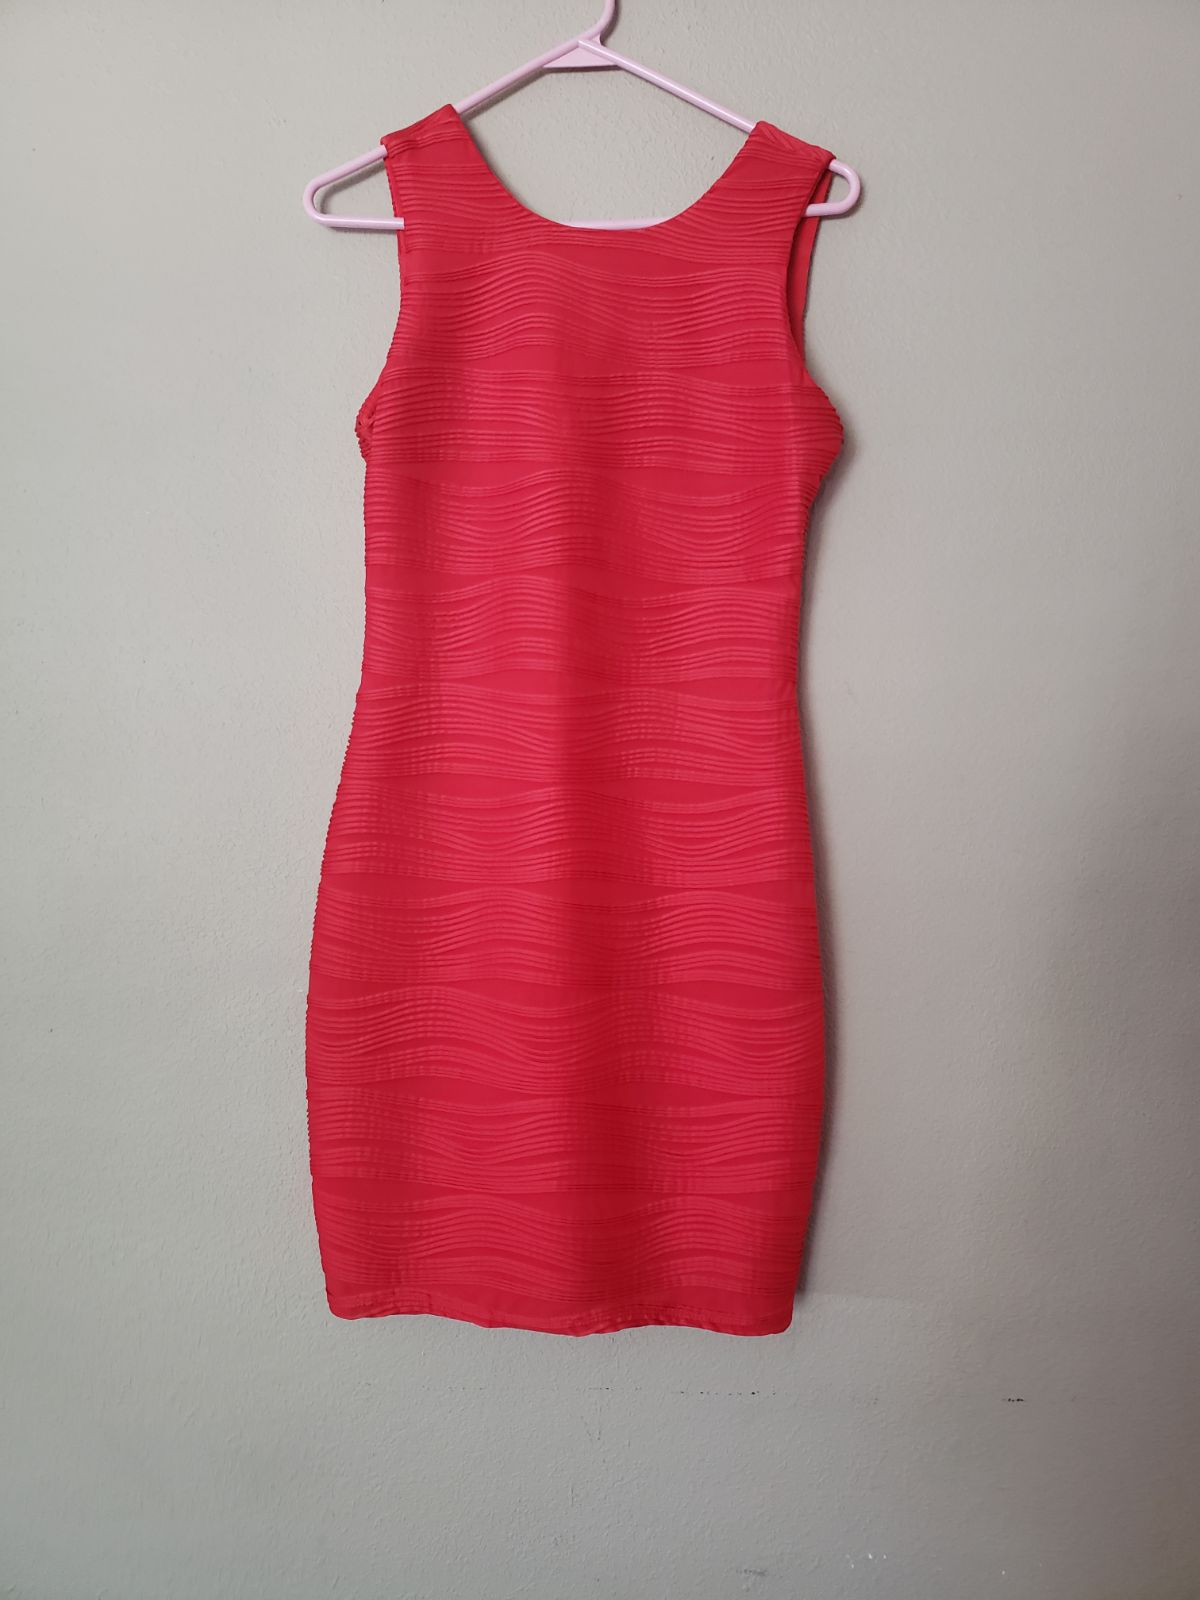 Red Dress Size 9/10